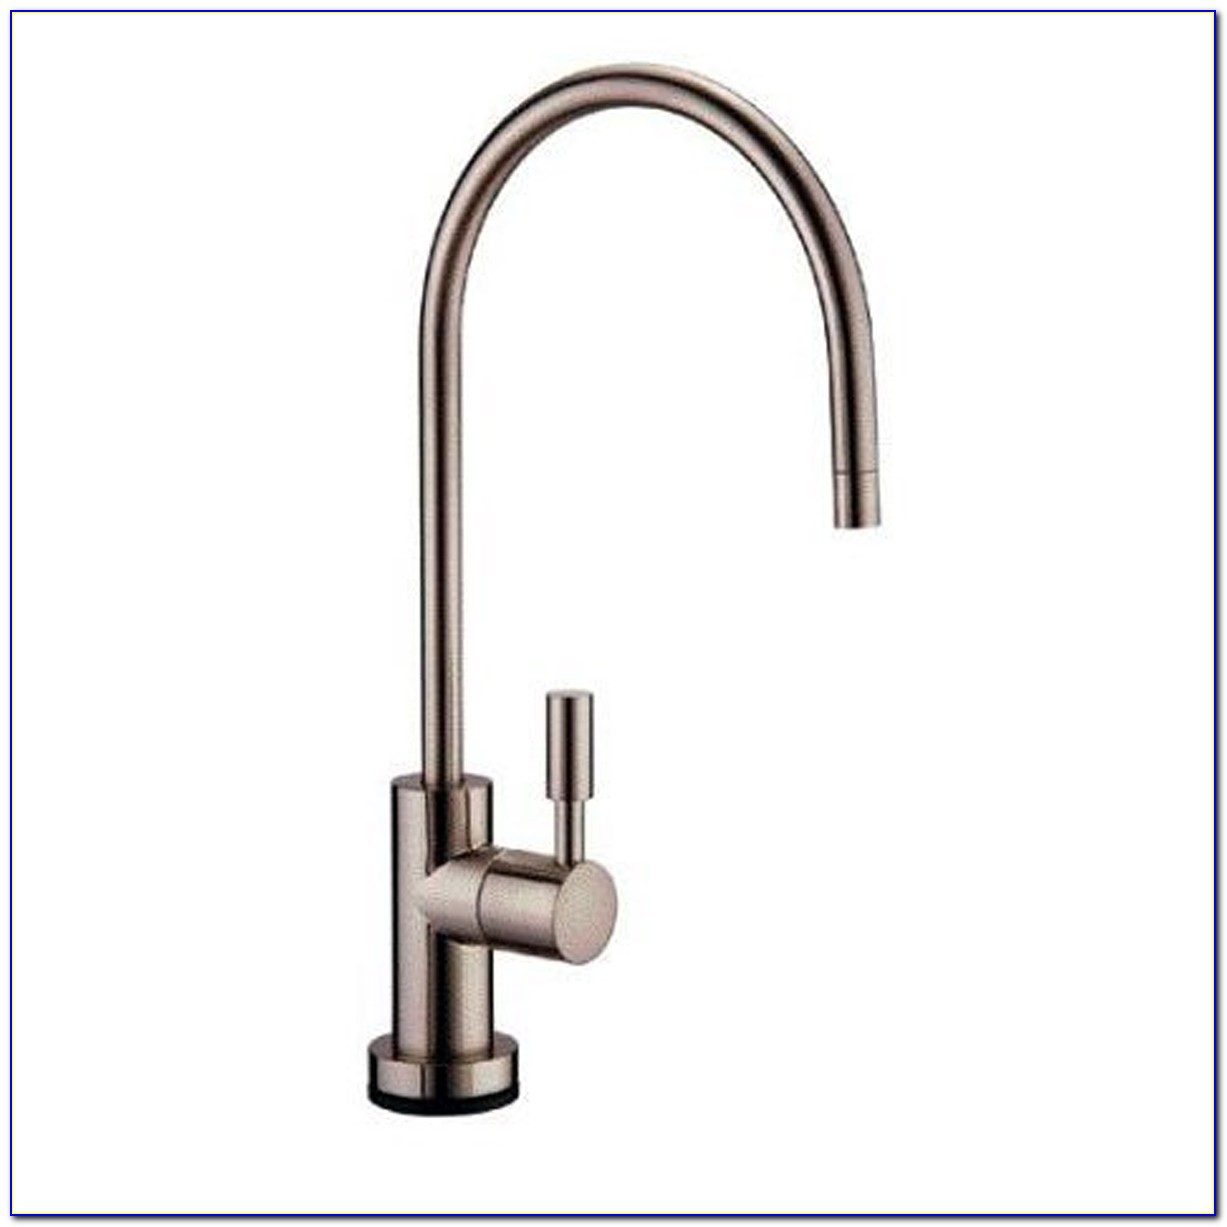 Brushed Nickel Water Filtration Faucet